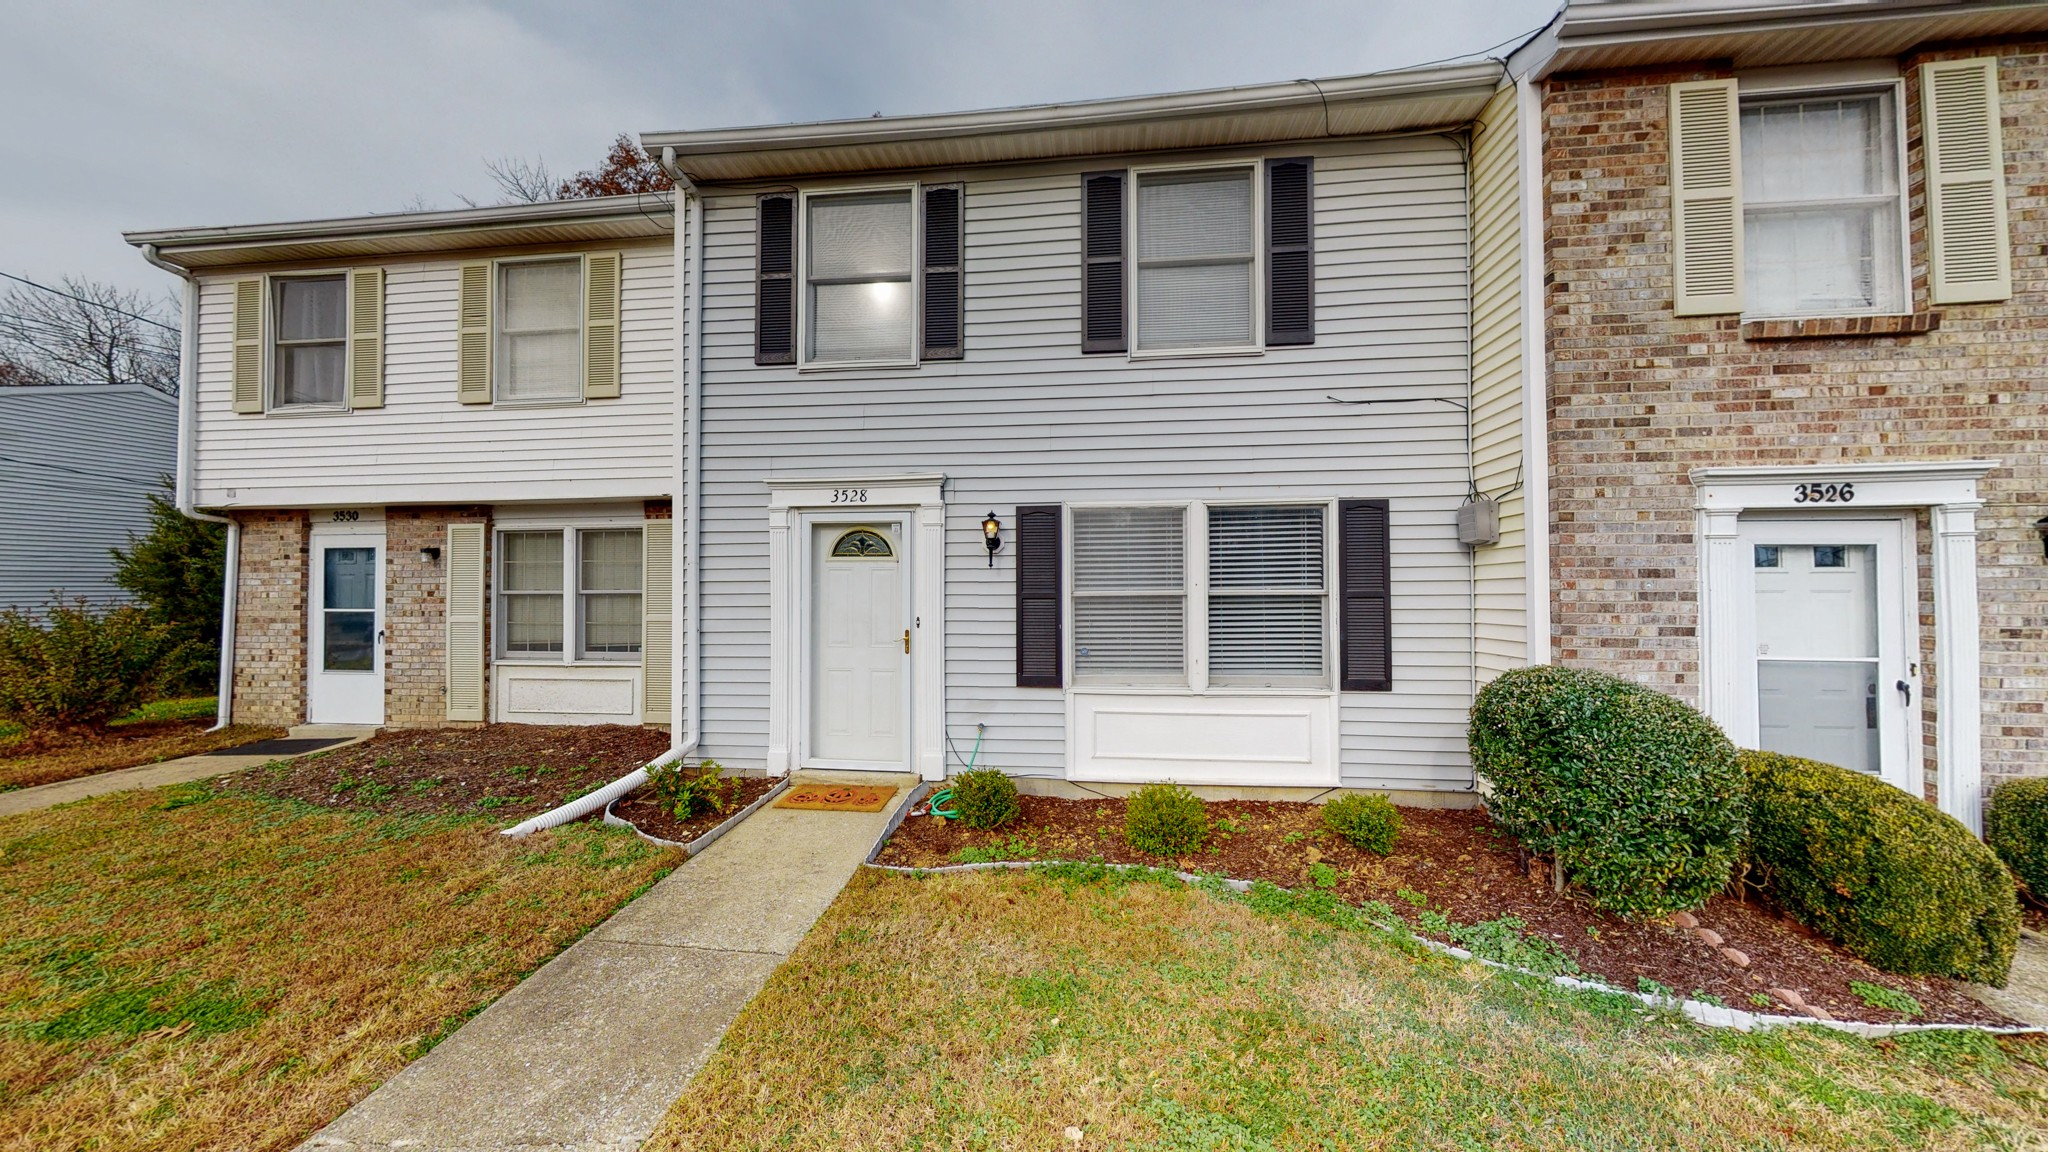 Great layout and amazing price! 2 story townhome, new HVAC, new sliding door, new paint and carpets professionally cleaned. Separate living and dining rooms with a pass through kitchen. Private outdoor patio with enclosed storage shed.  Must See!  **Renting is not permitted**